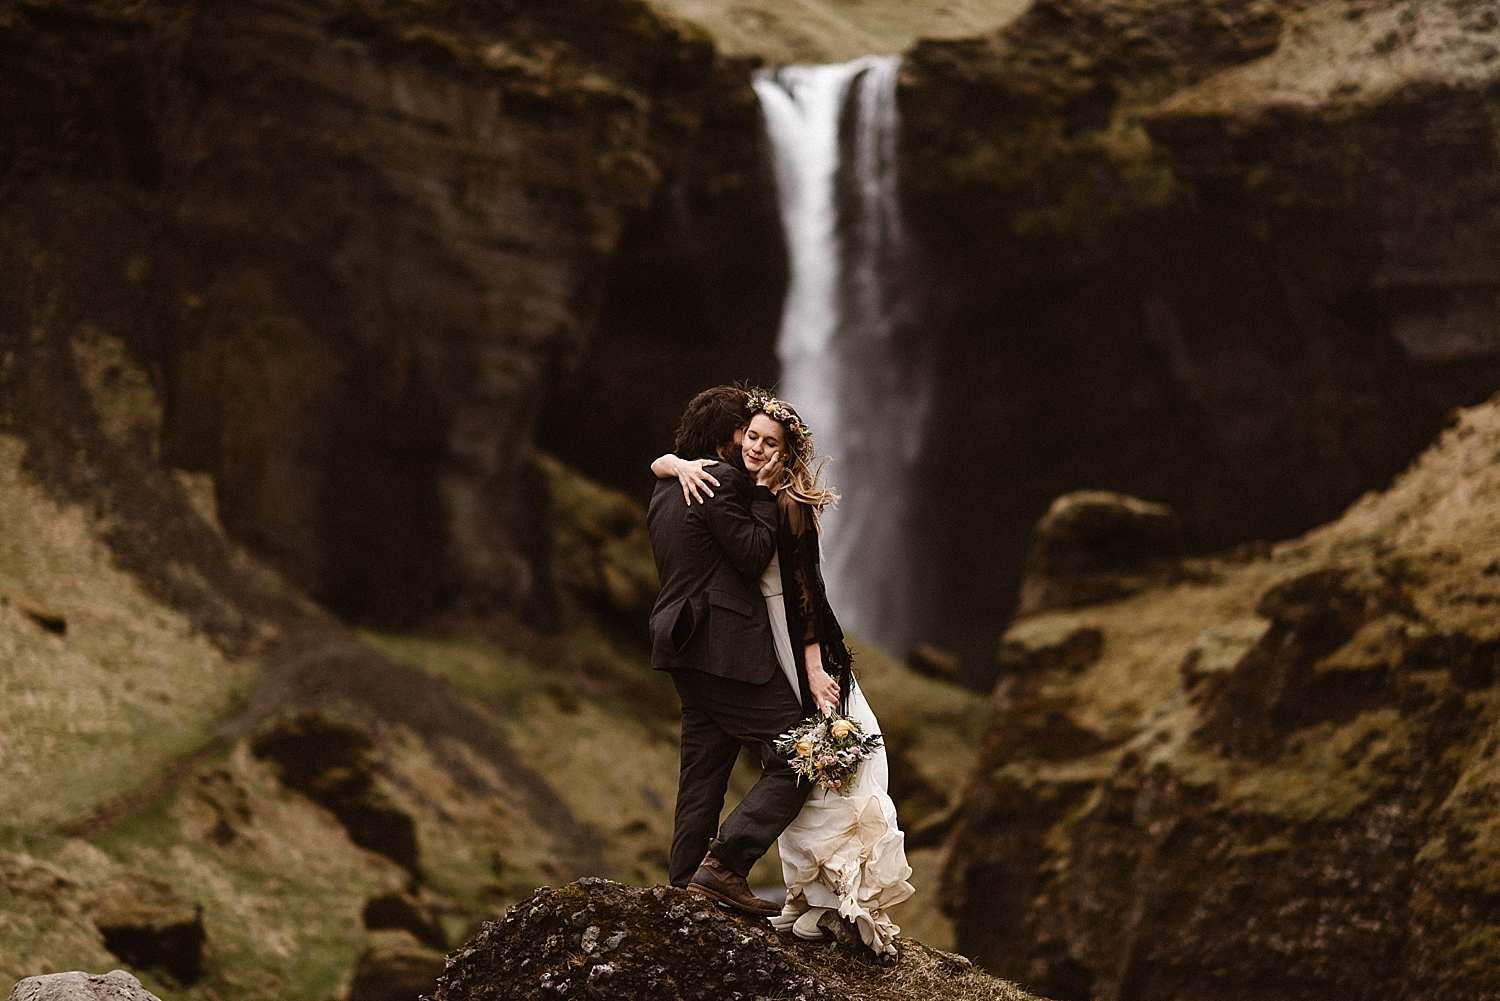 Before wandering closer to Kvernufoss waterfall, Tim and Julie paused in a long embrace, the wind whipping around them. This epic Iceland elopement captured by intimate wedding photographer Maddie Mae.